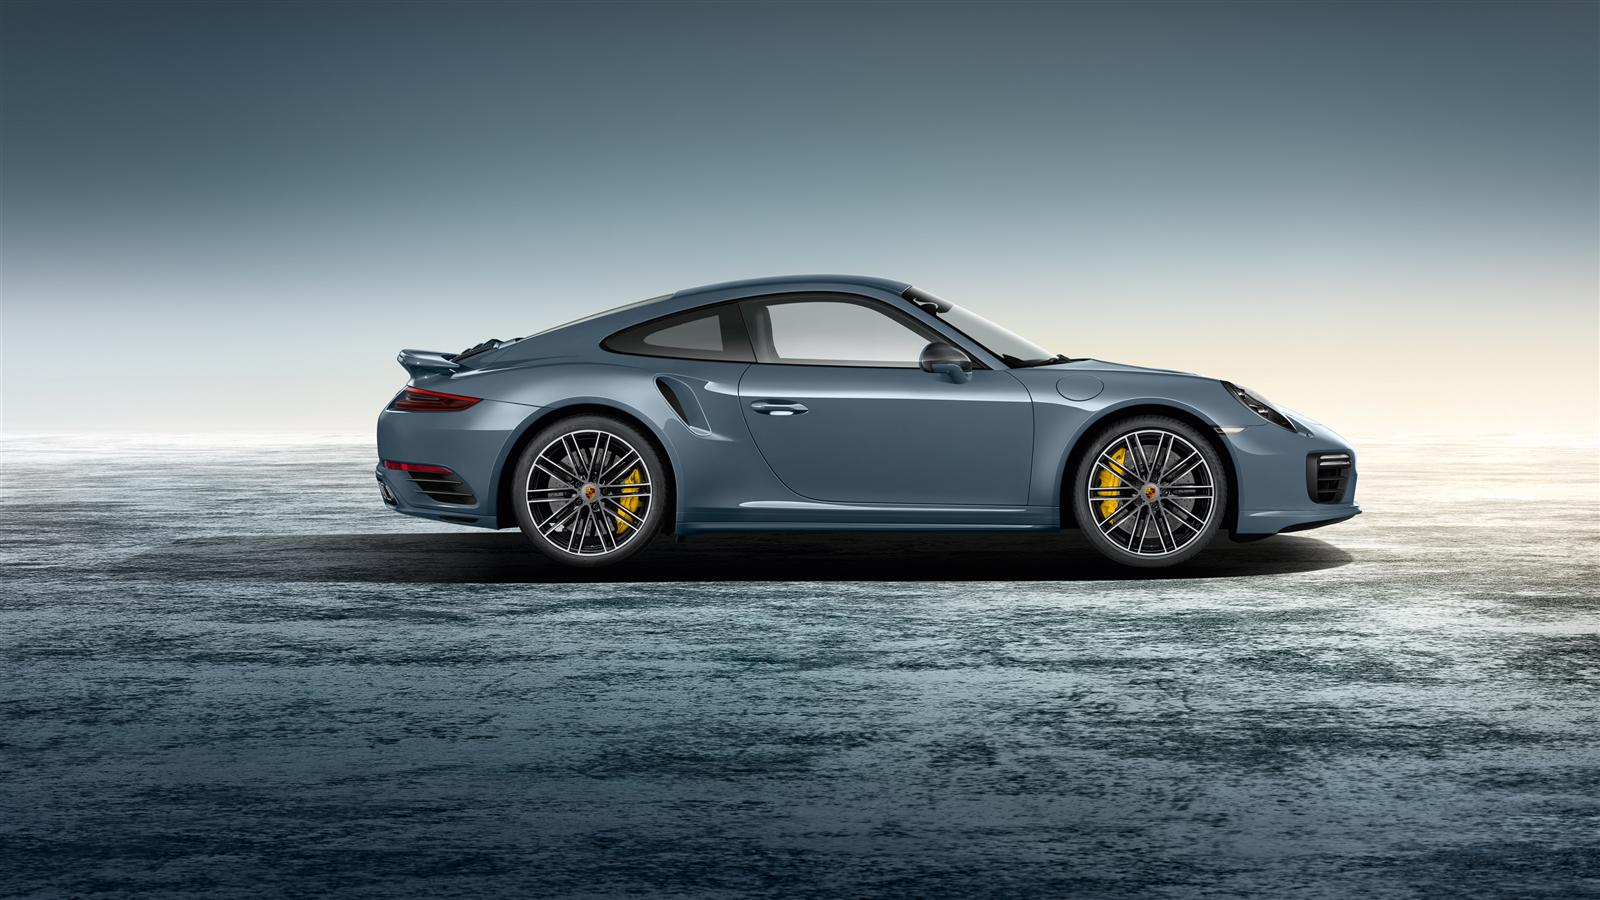 Exclusive 911 Turbo S